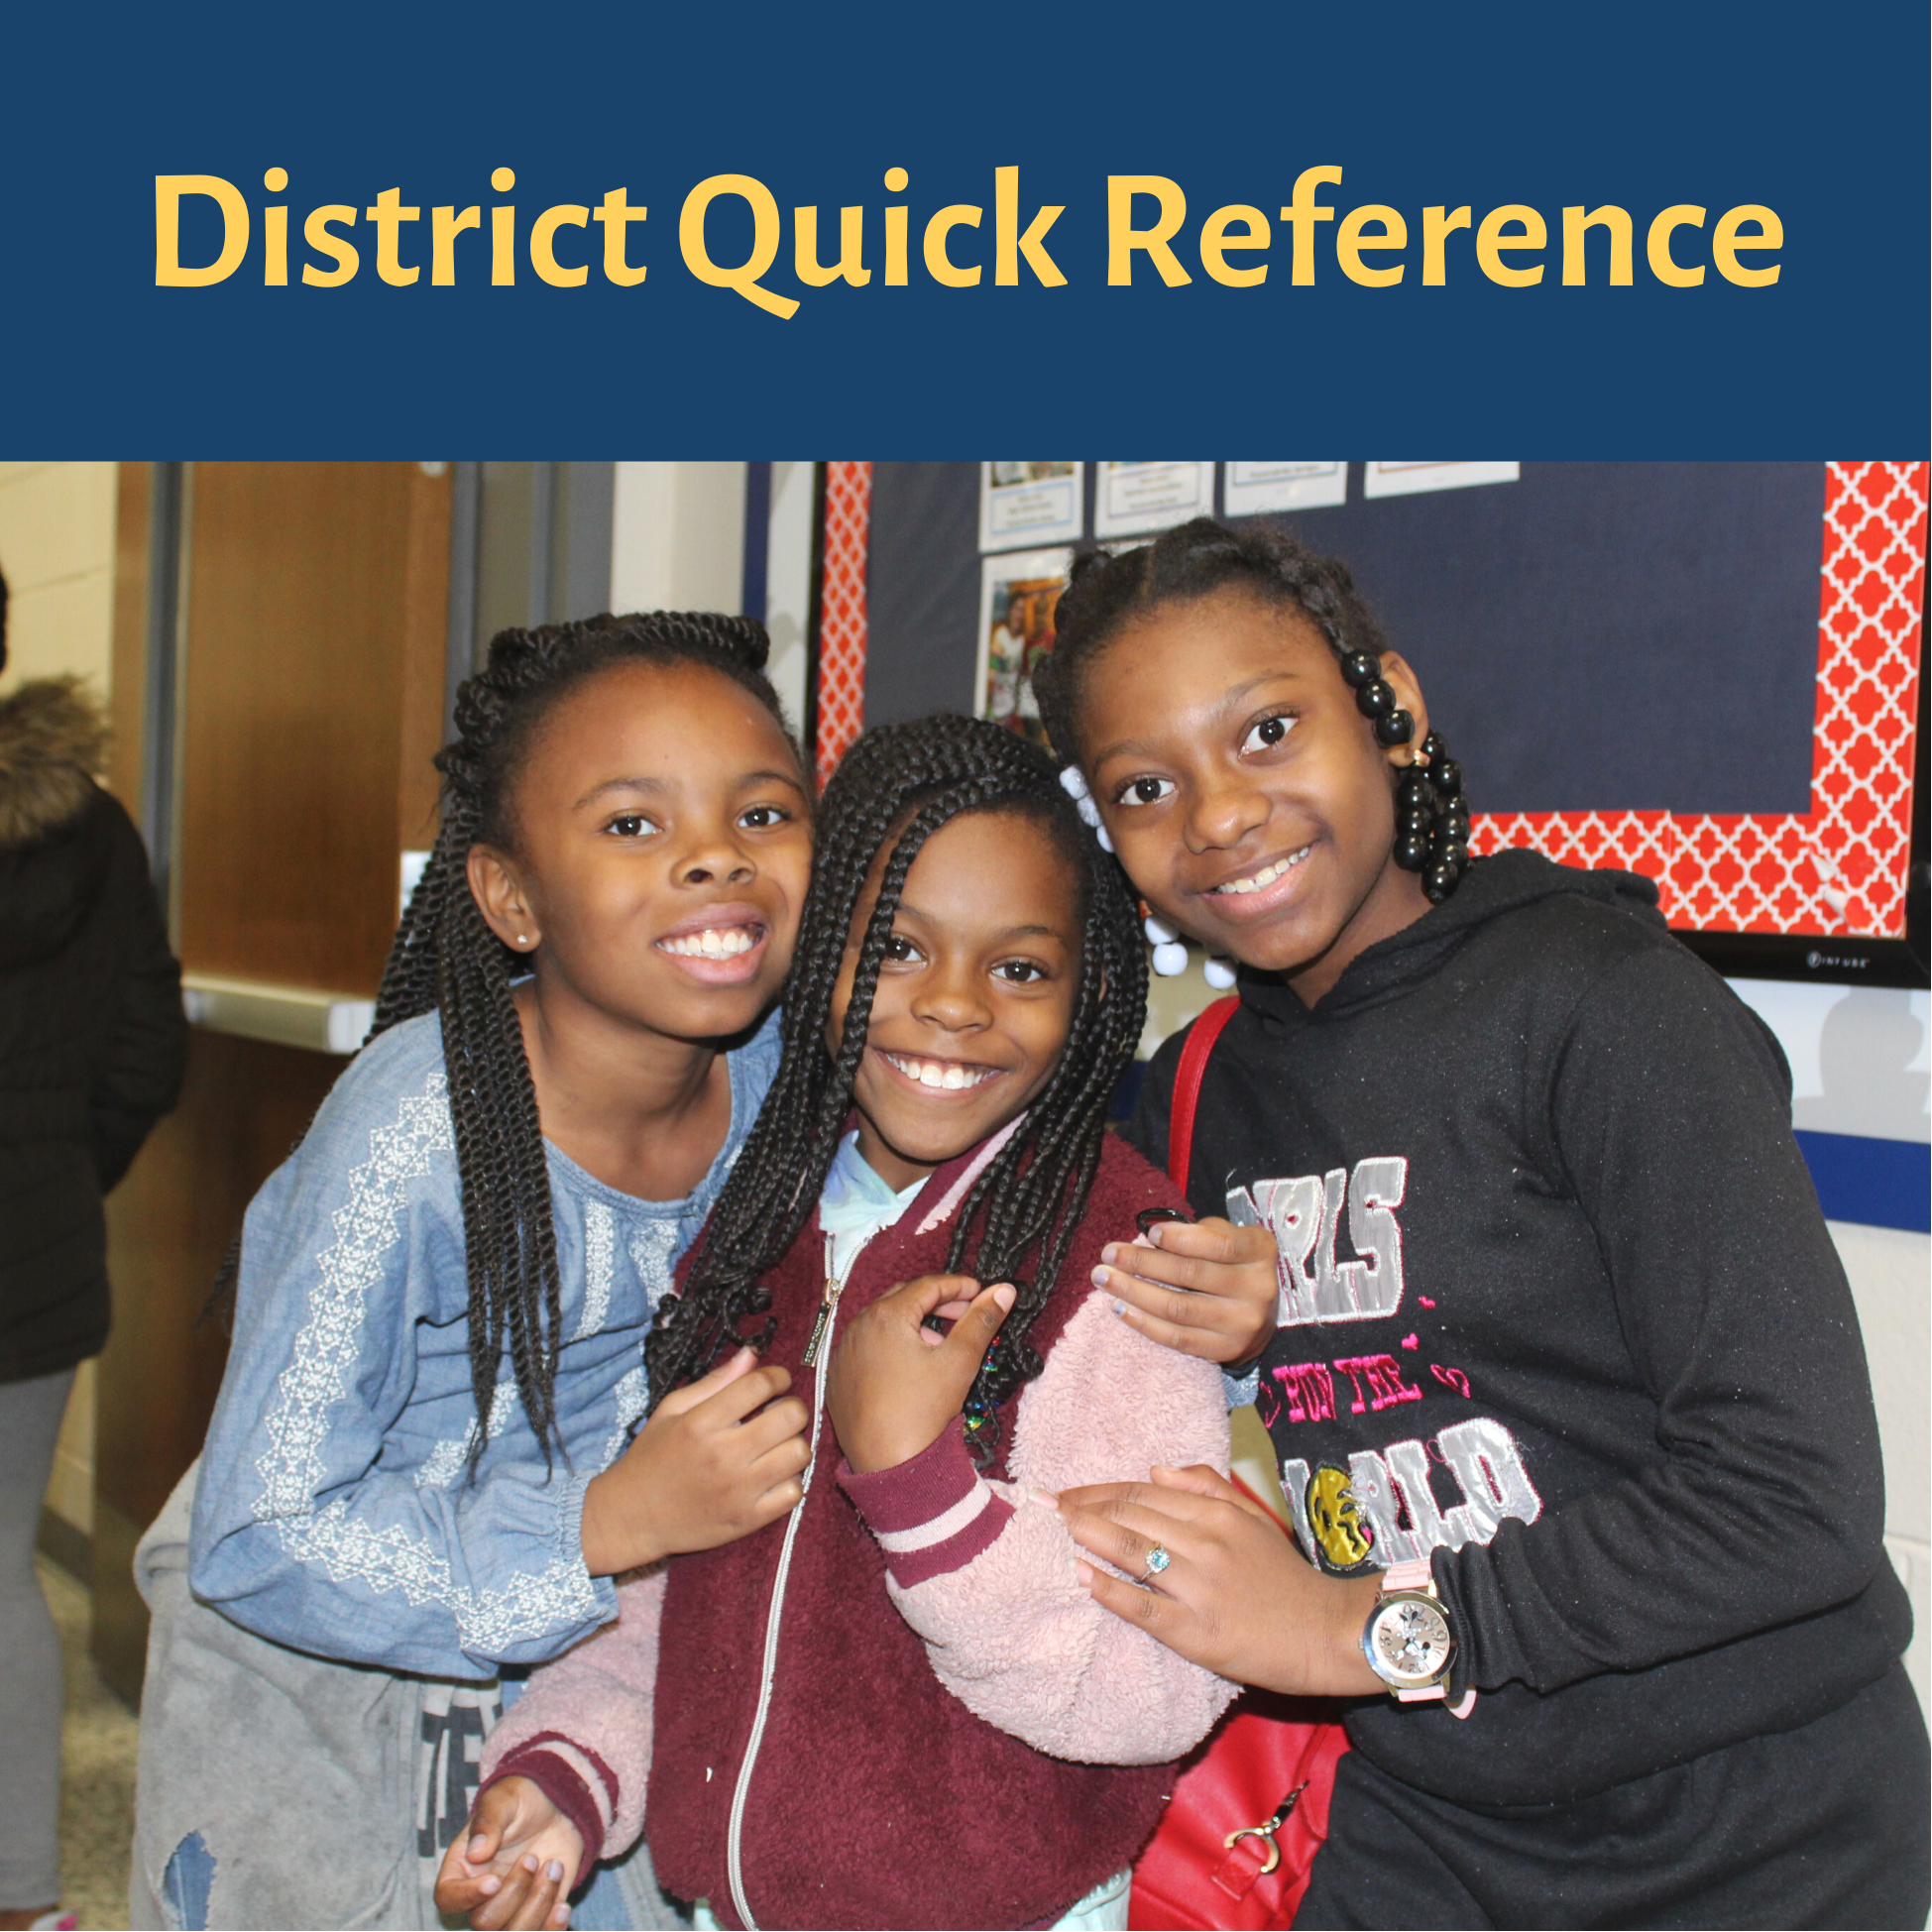 District Quick Reference guide